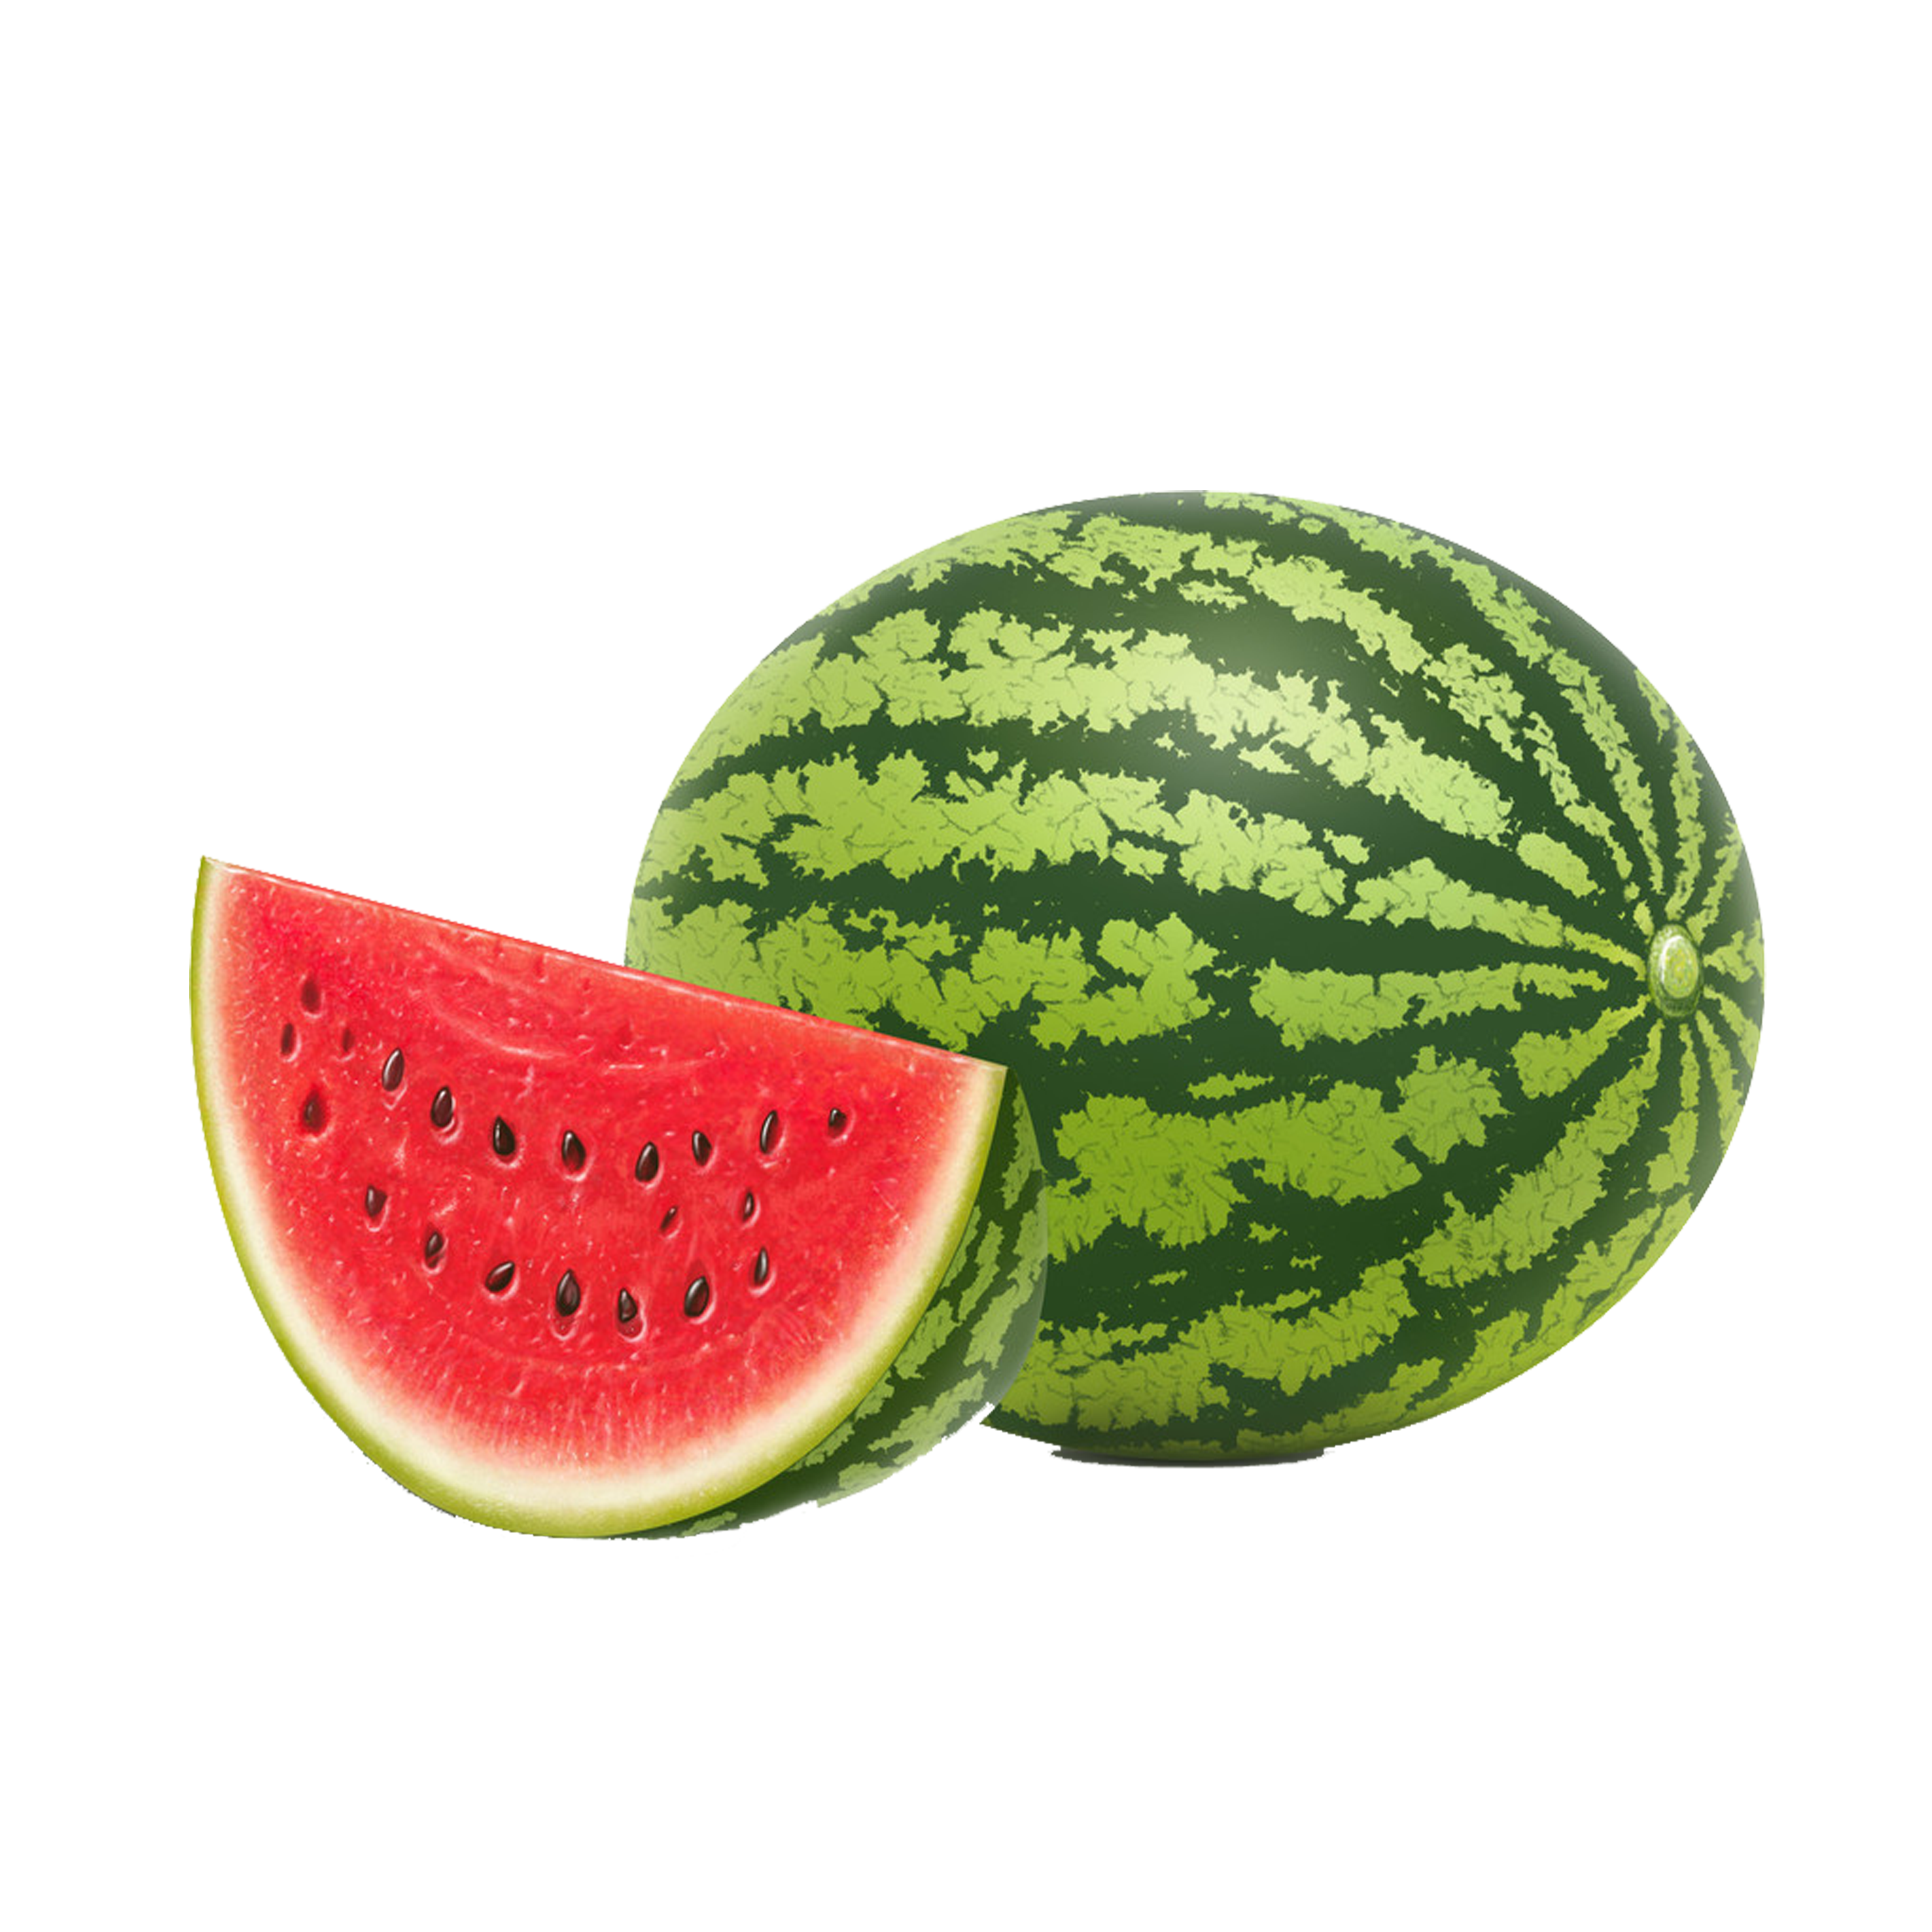 Watermelon seeds png. Seed fruit vegetable transprent